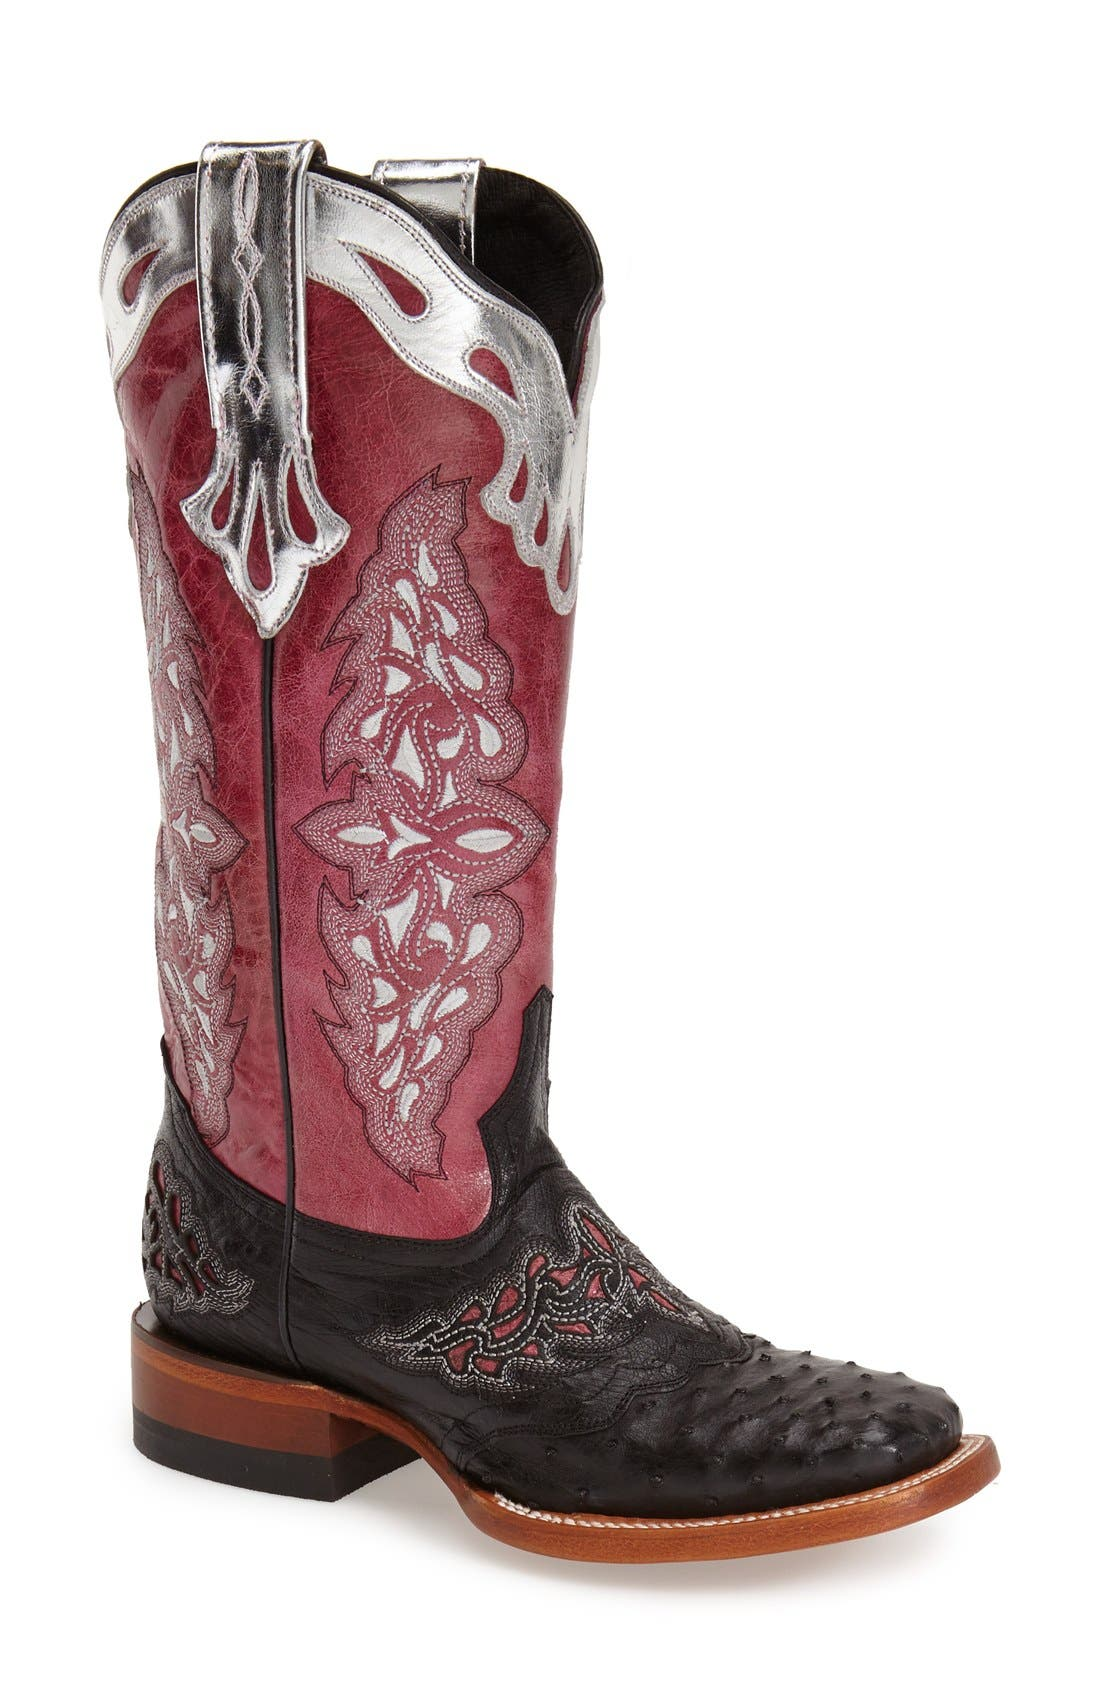 Alternate Image 1 Selected - Lucchese 'Amberlyn' Western Boot (Women)